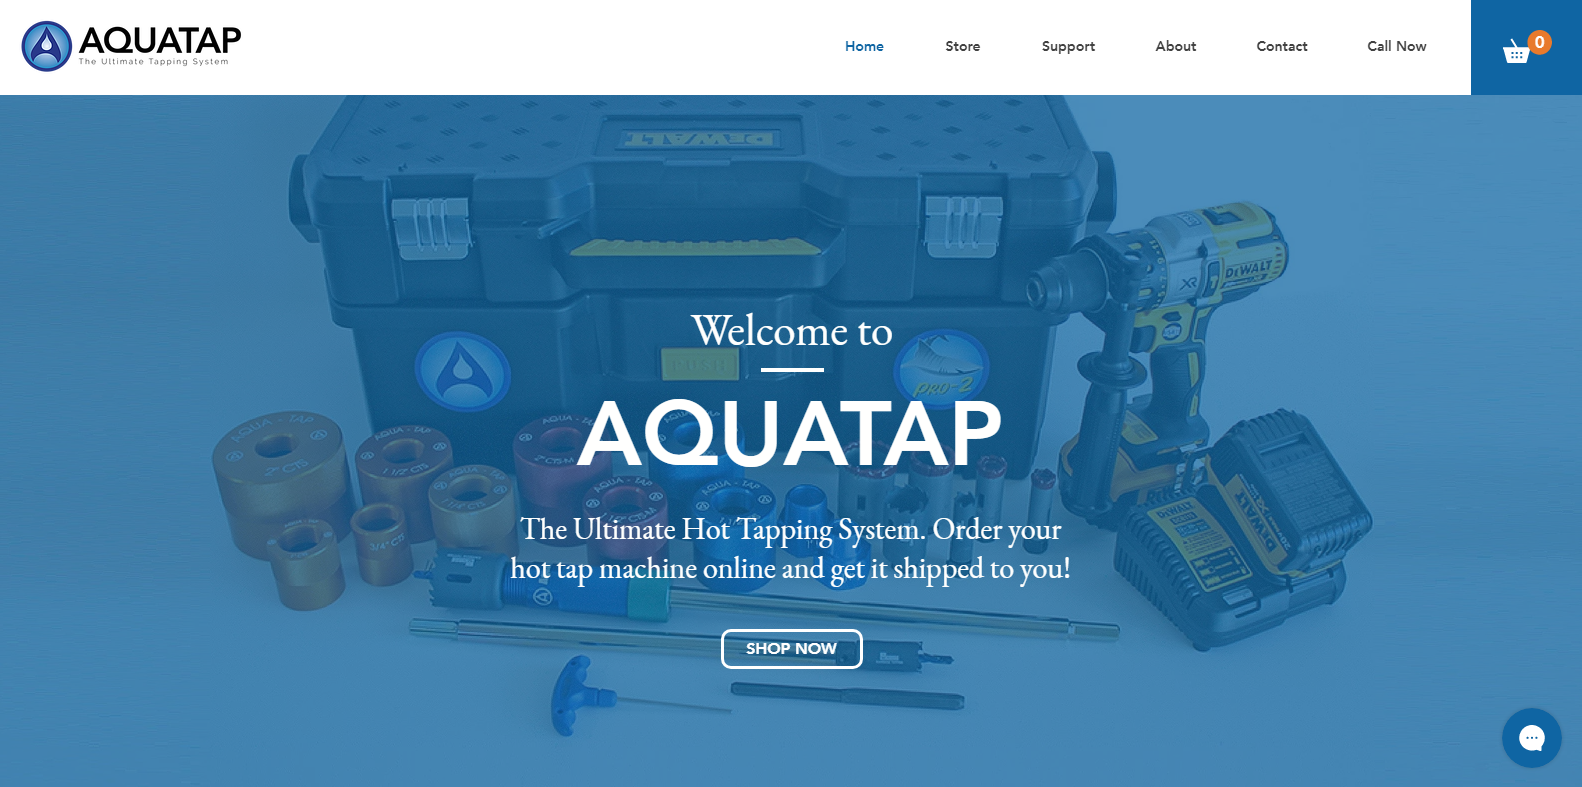 The Ultimate Hot Tapping Machines from AquaTap made in